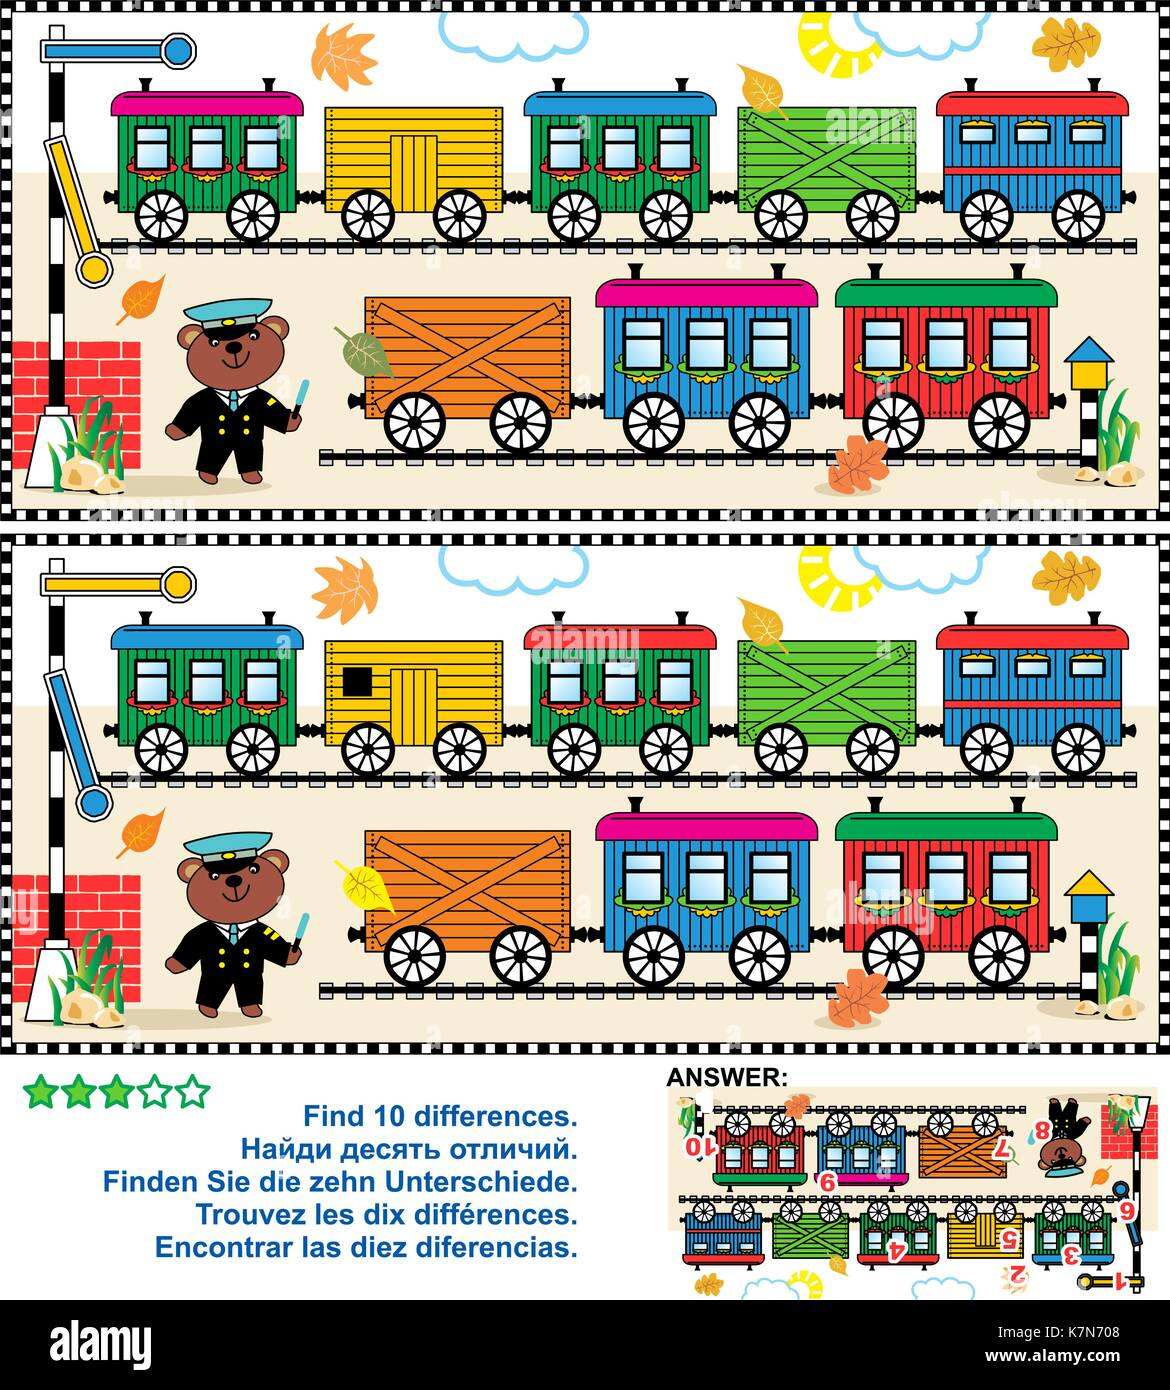 Toy train visual puzzle: Find the ten differences between the two pictures  - train cars, railway, railroad roadsigns, - Stock Image